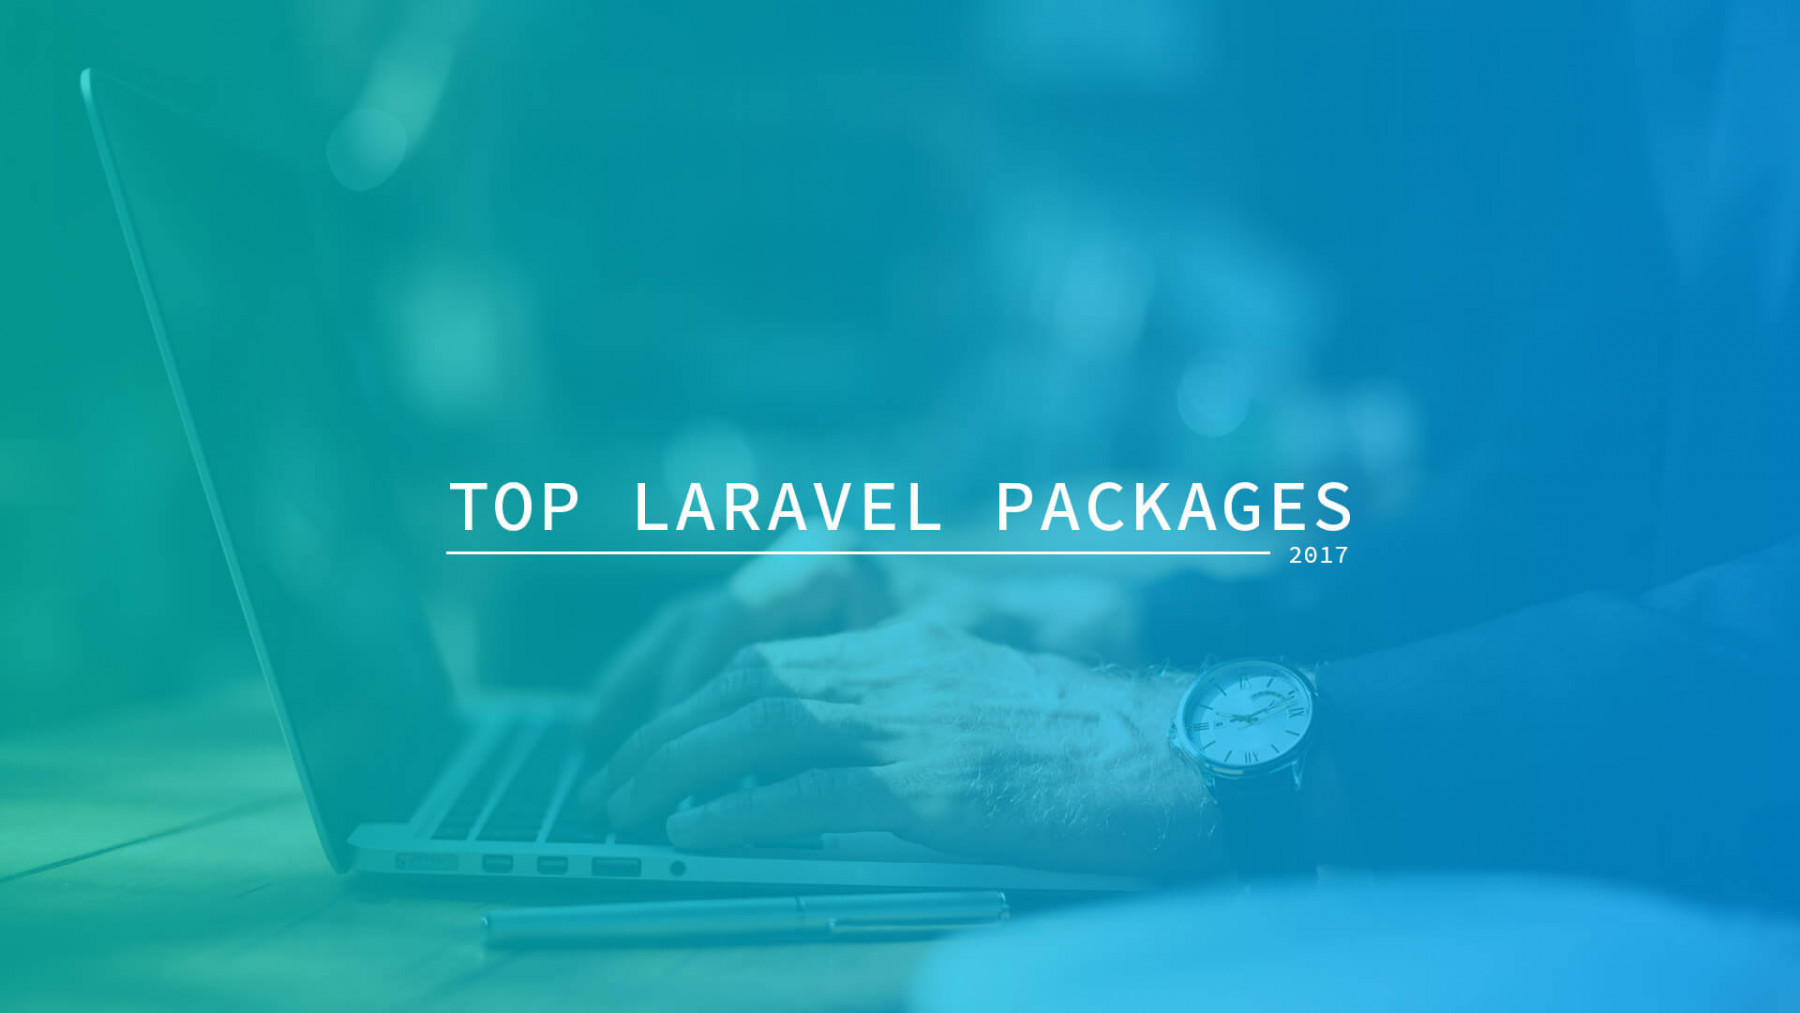 Top Laravel Packages for 2017